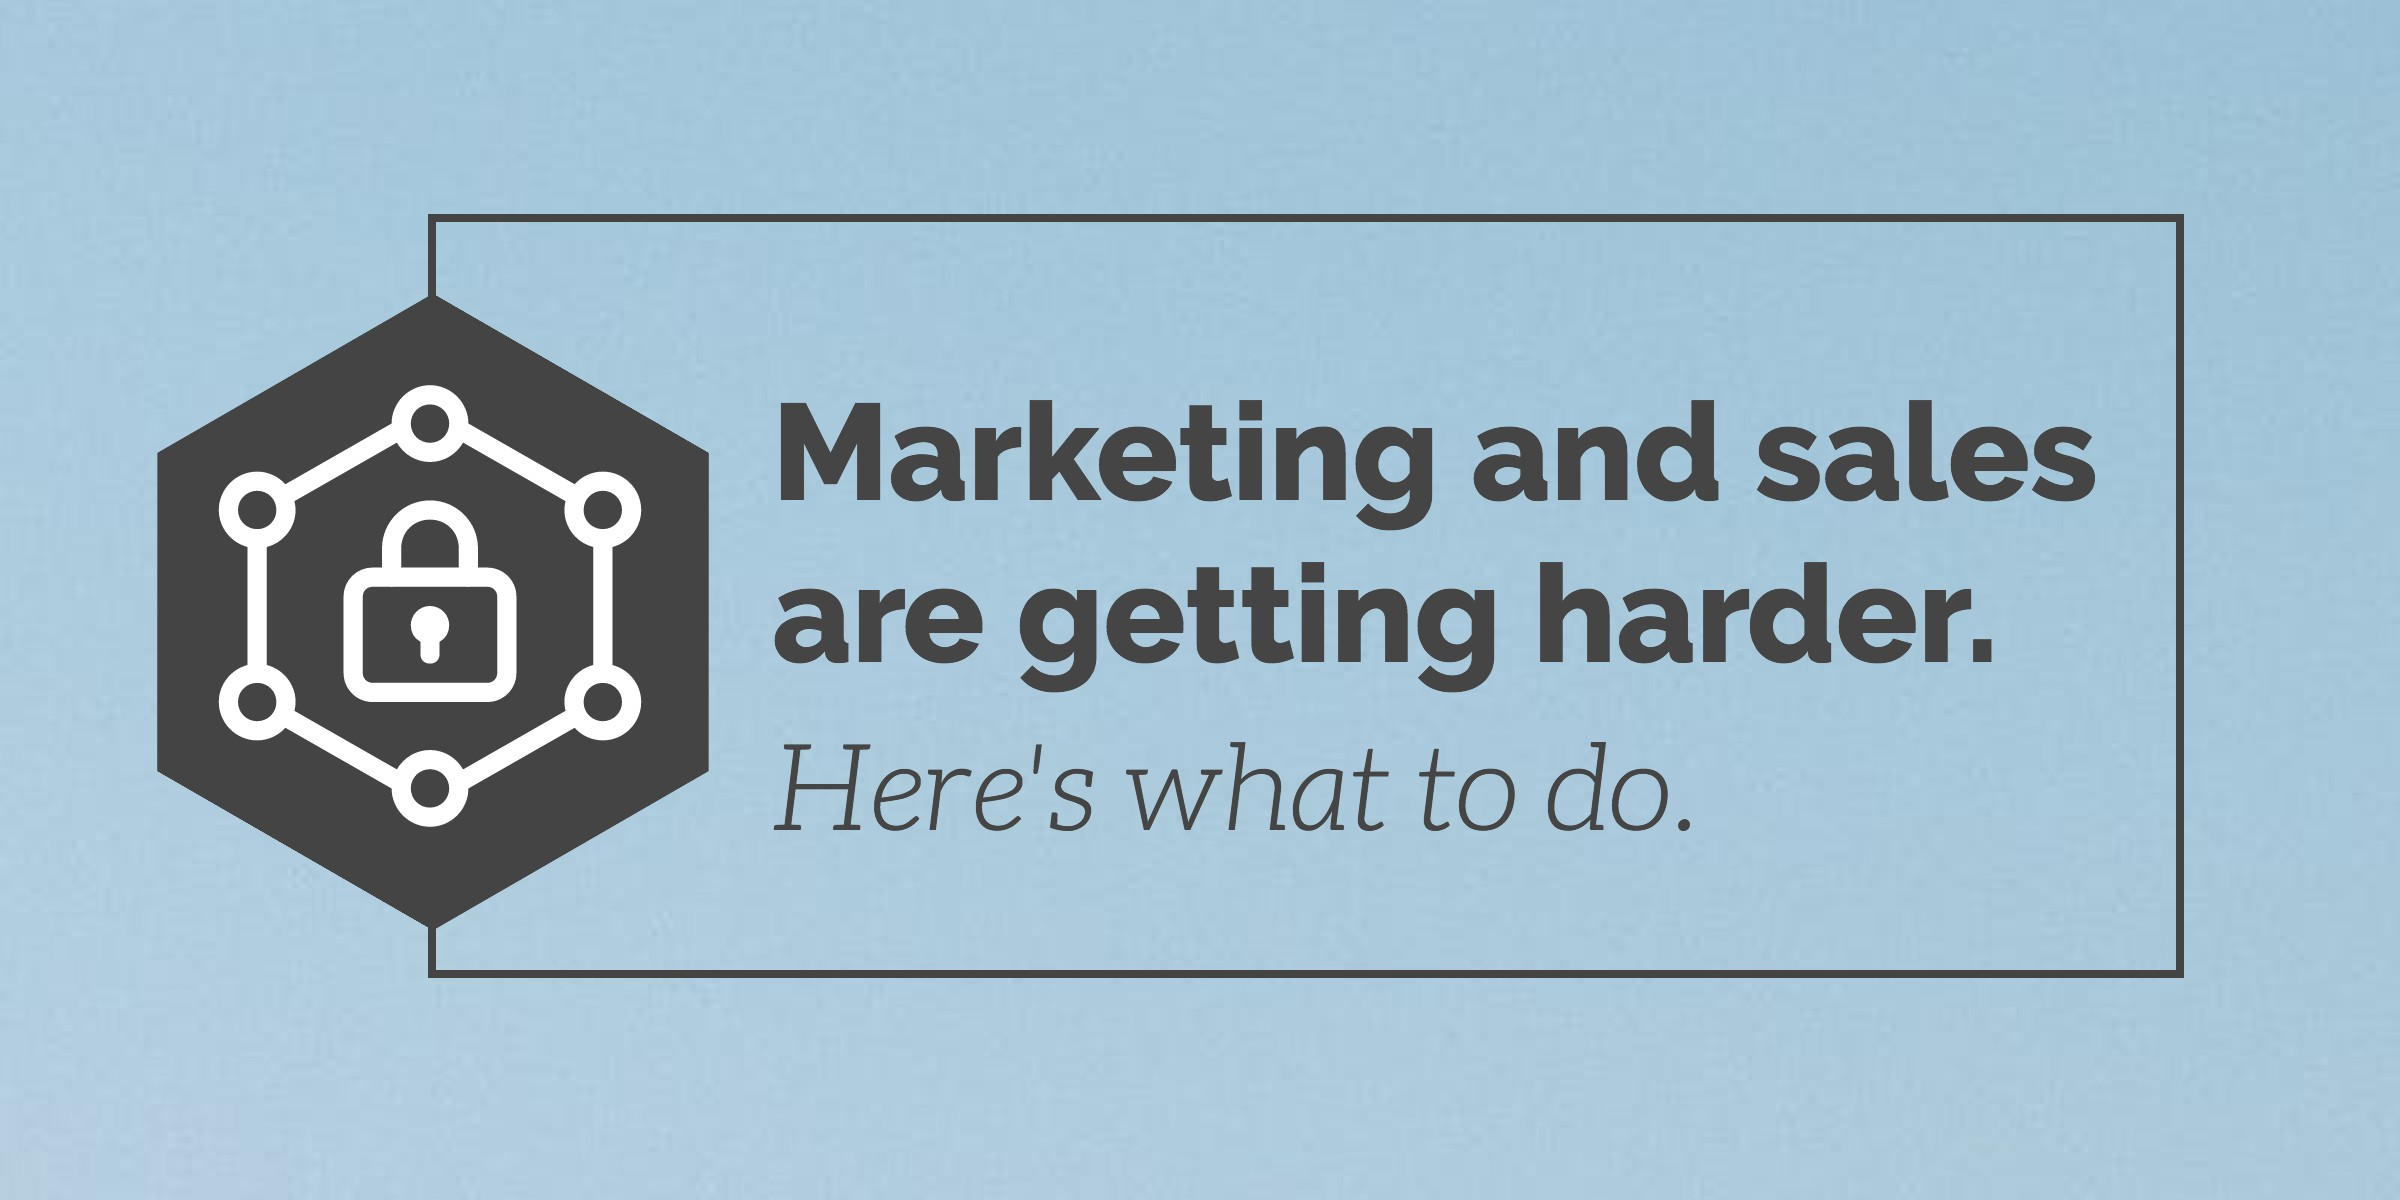 Marketing and sales are getting harder. Here's what to do.